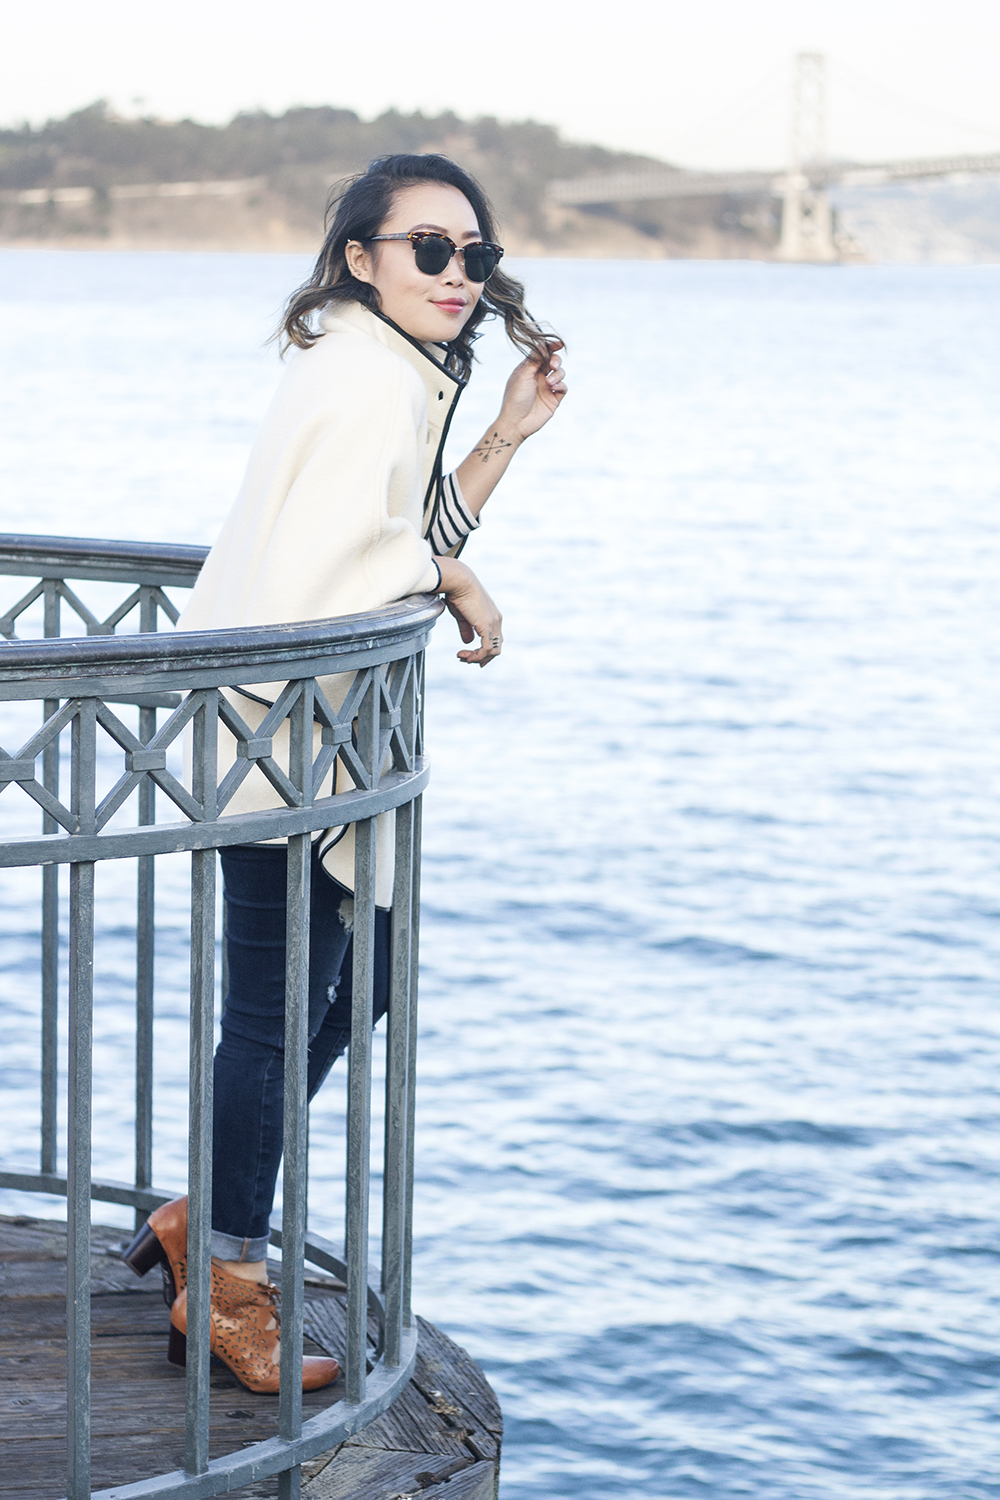 05markandgraham-sf-sanfrancisco-pier-cape-fall-style-fashion